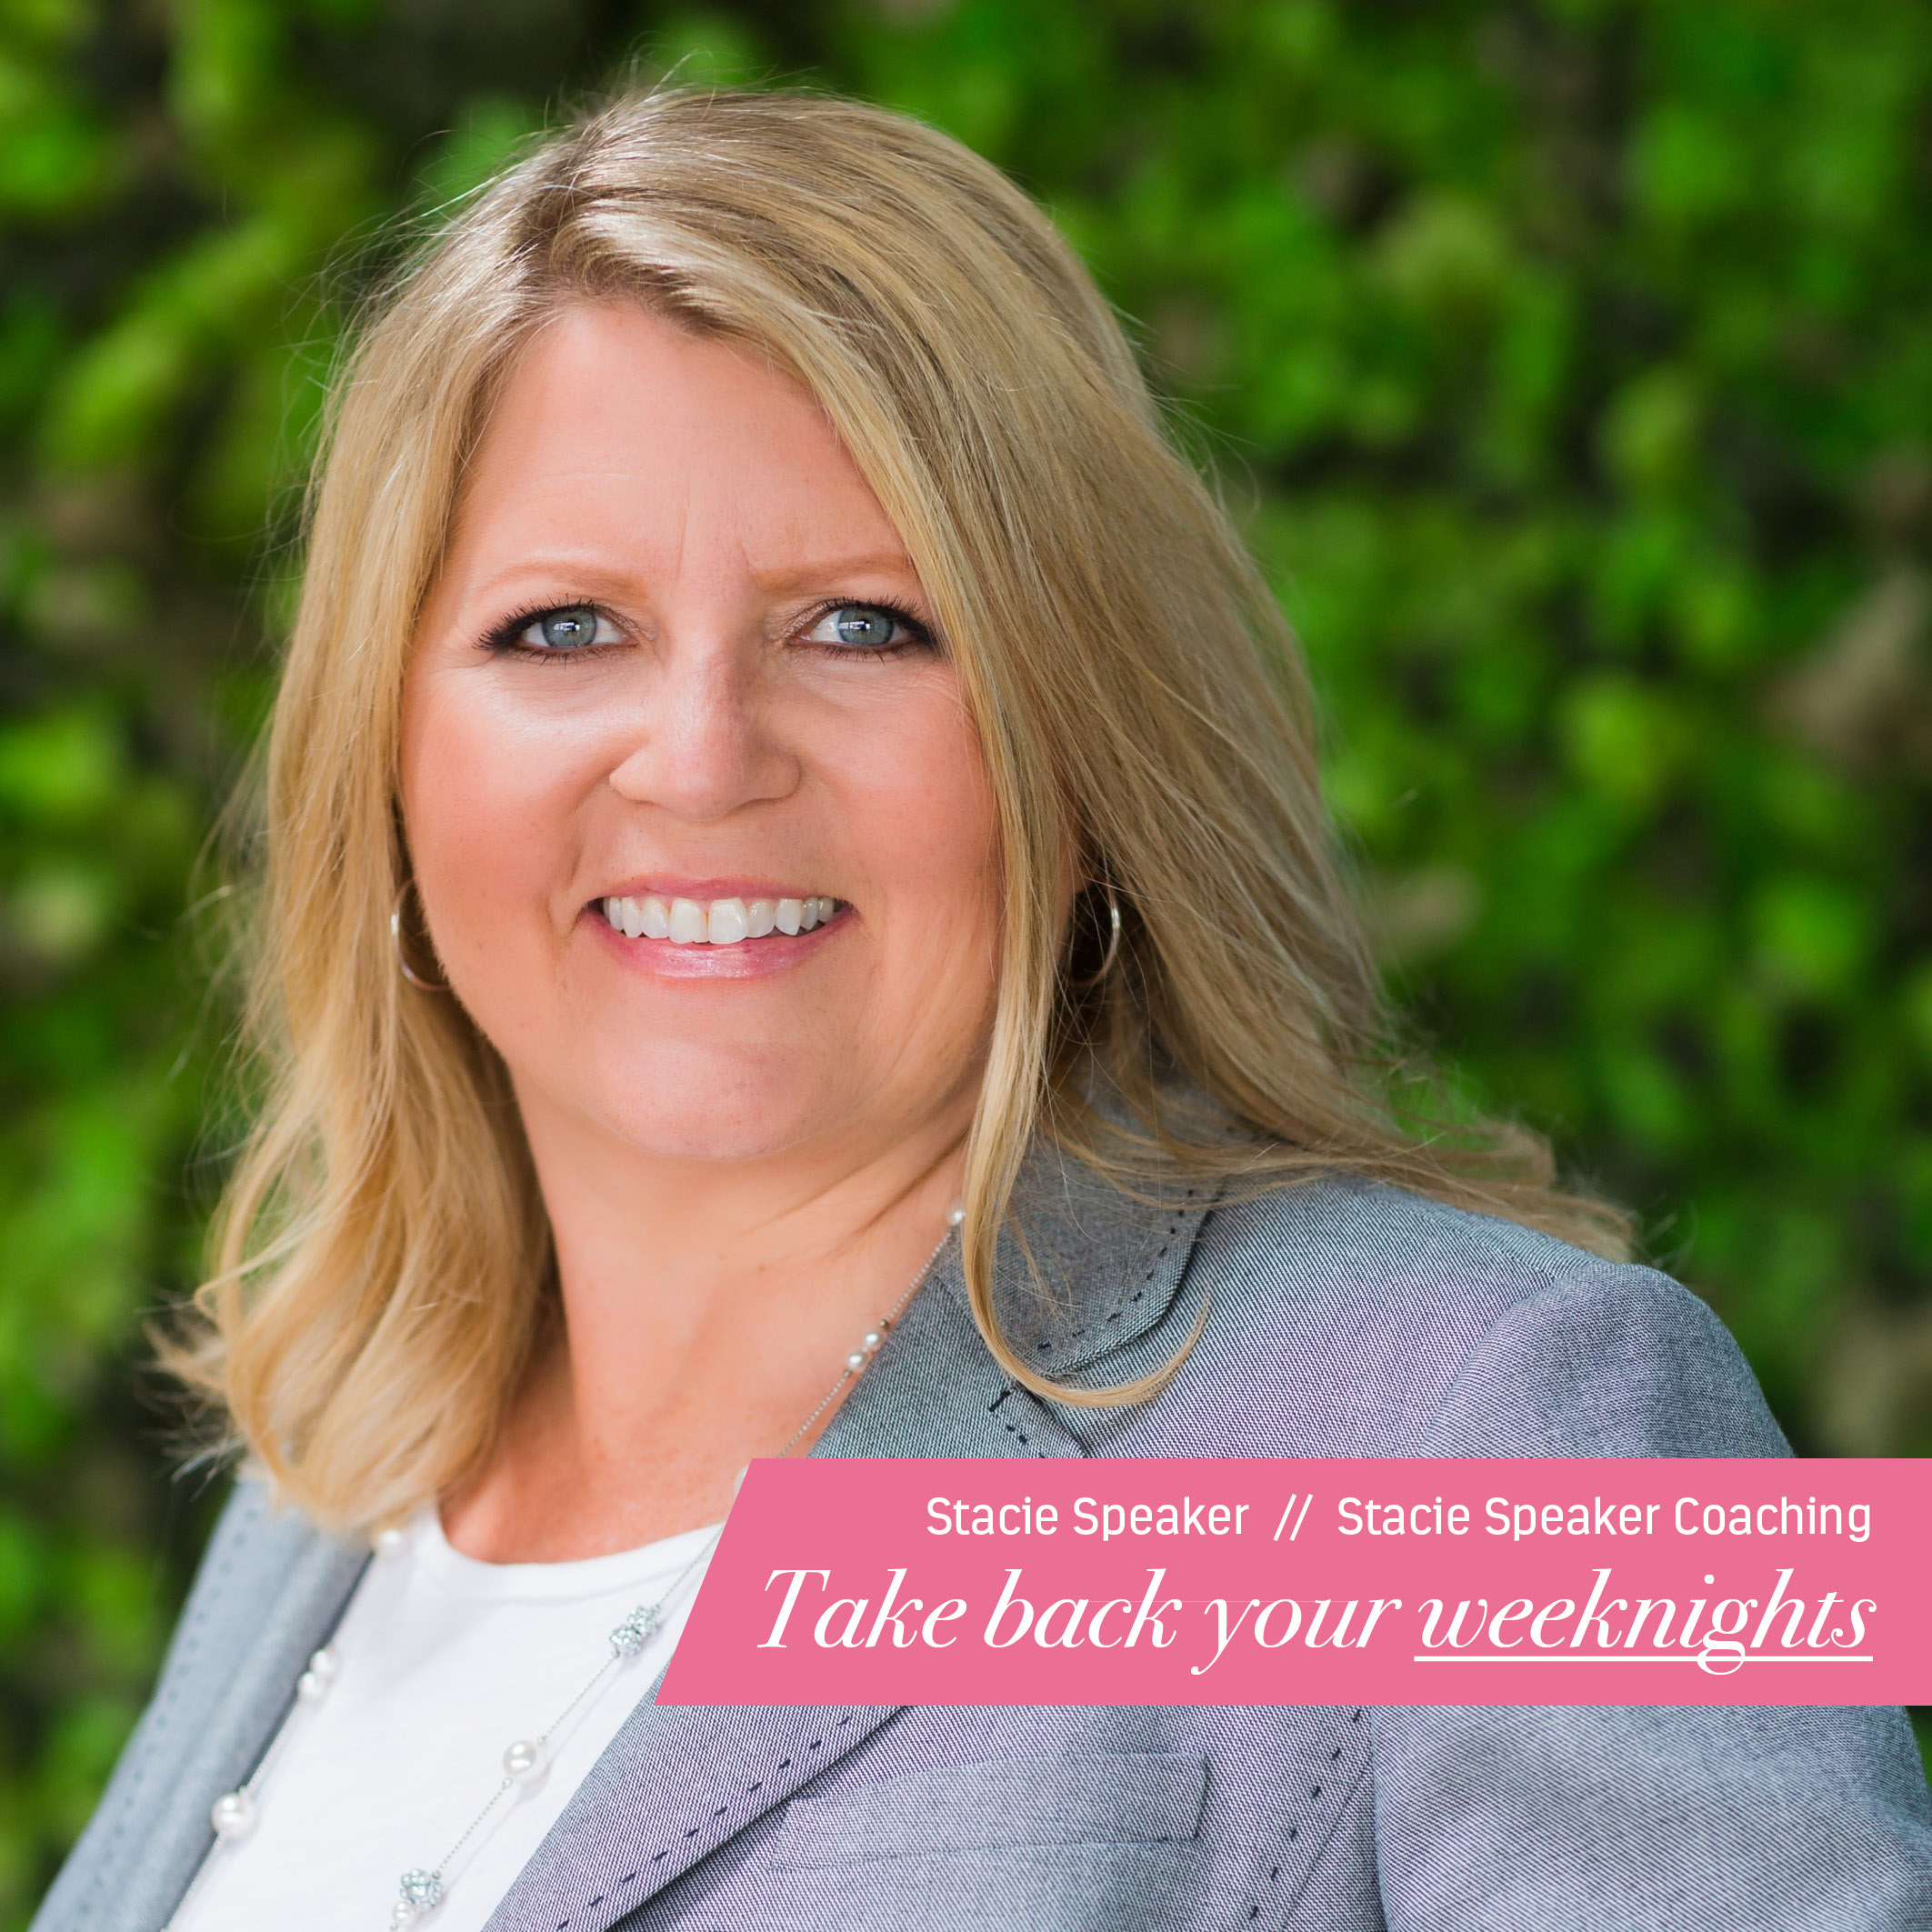 Stacie Speaker - Communications Expert & Coach